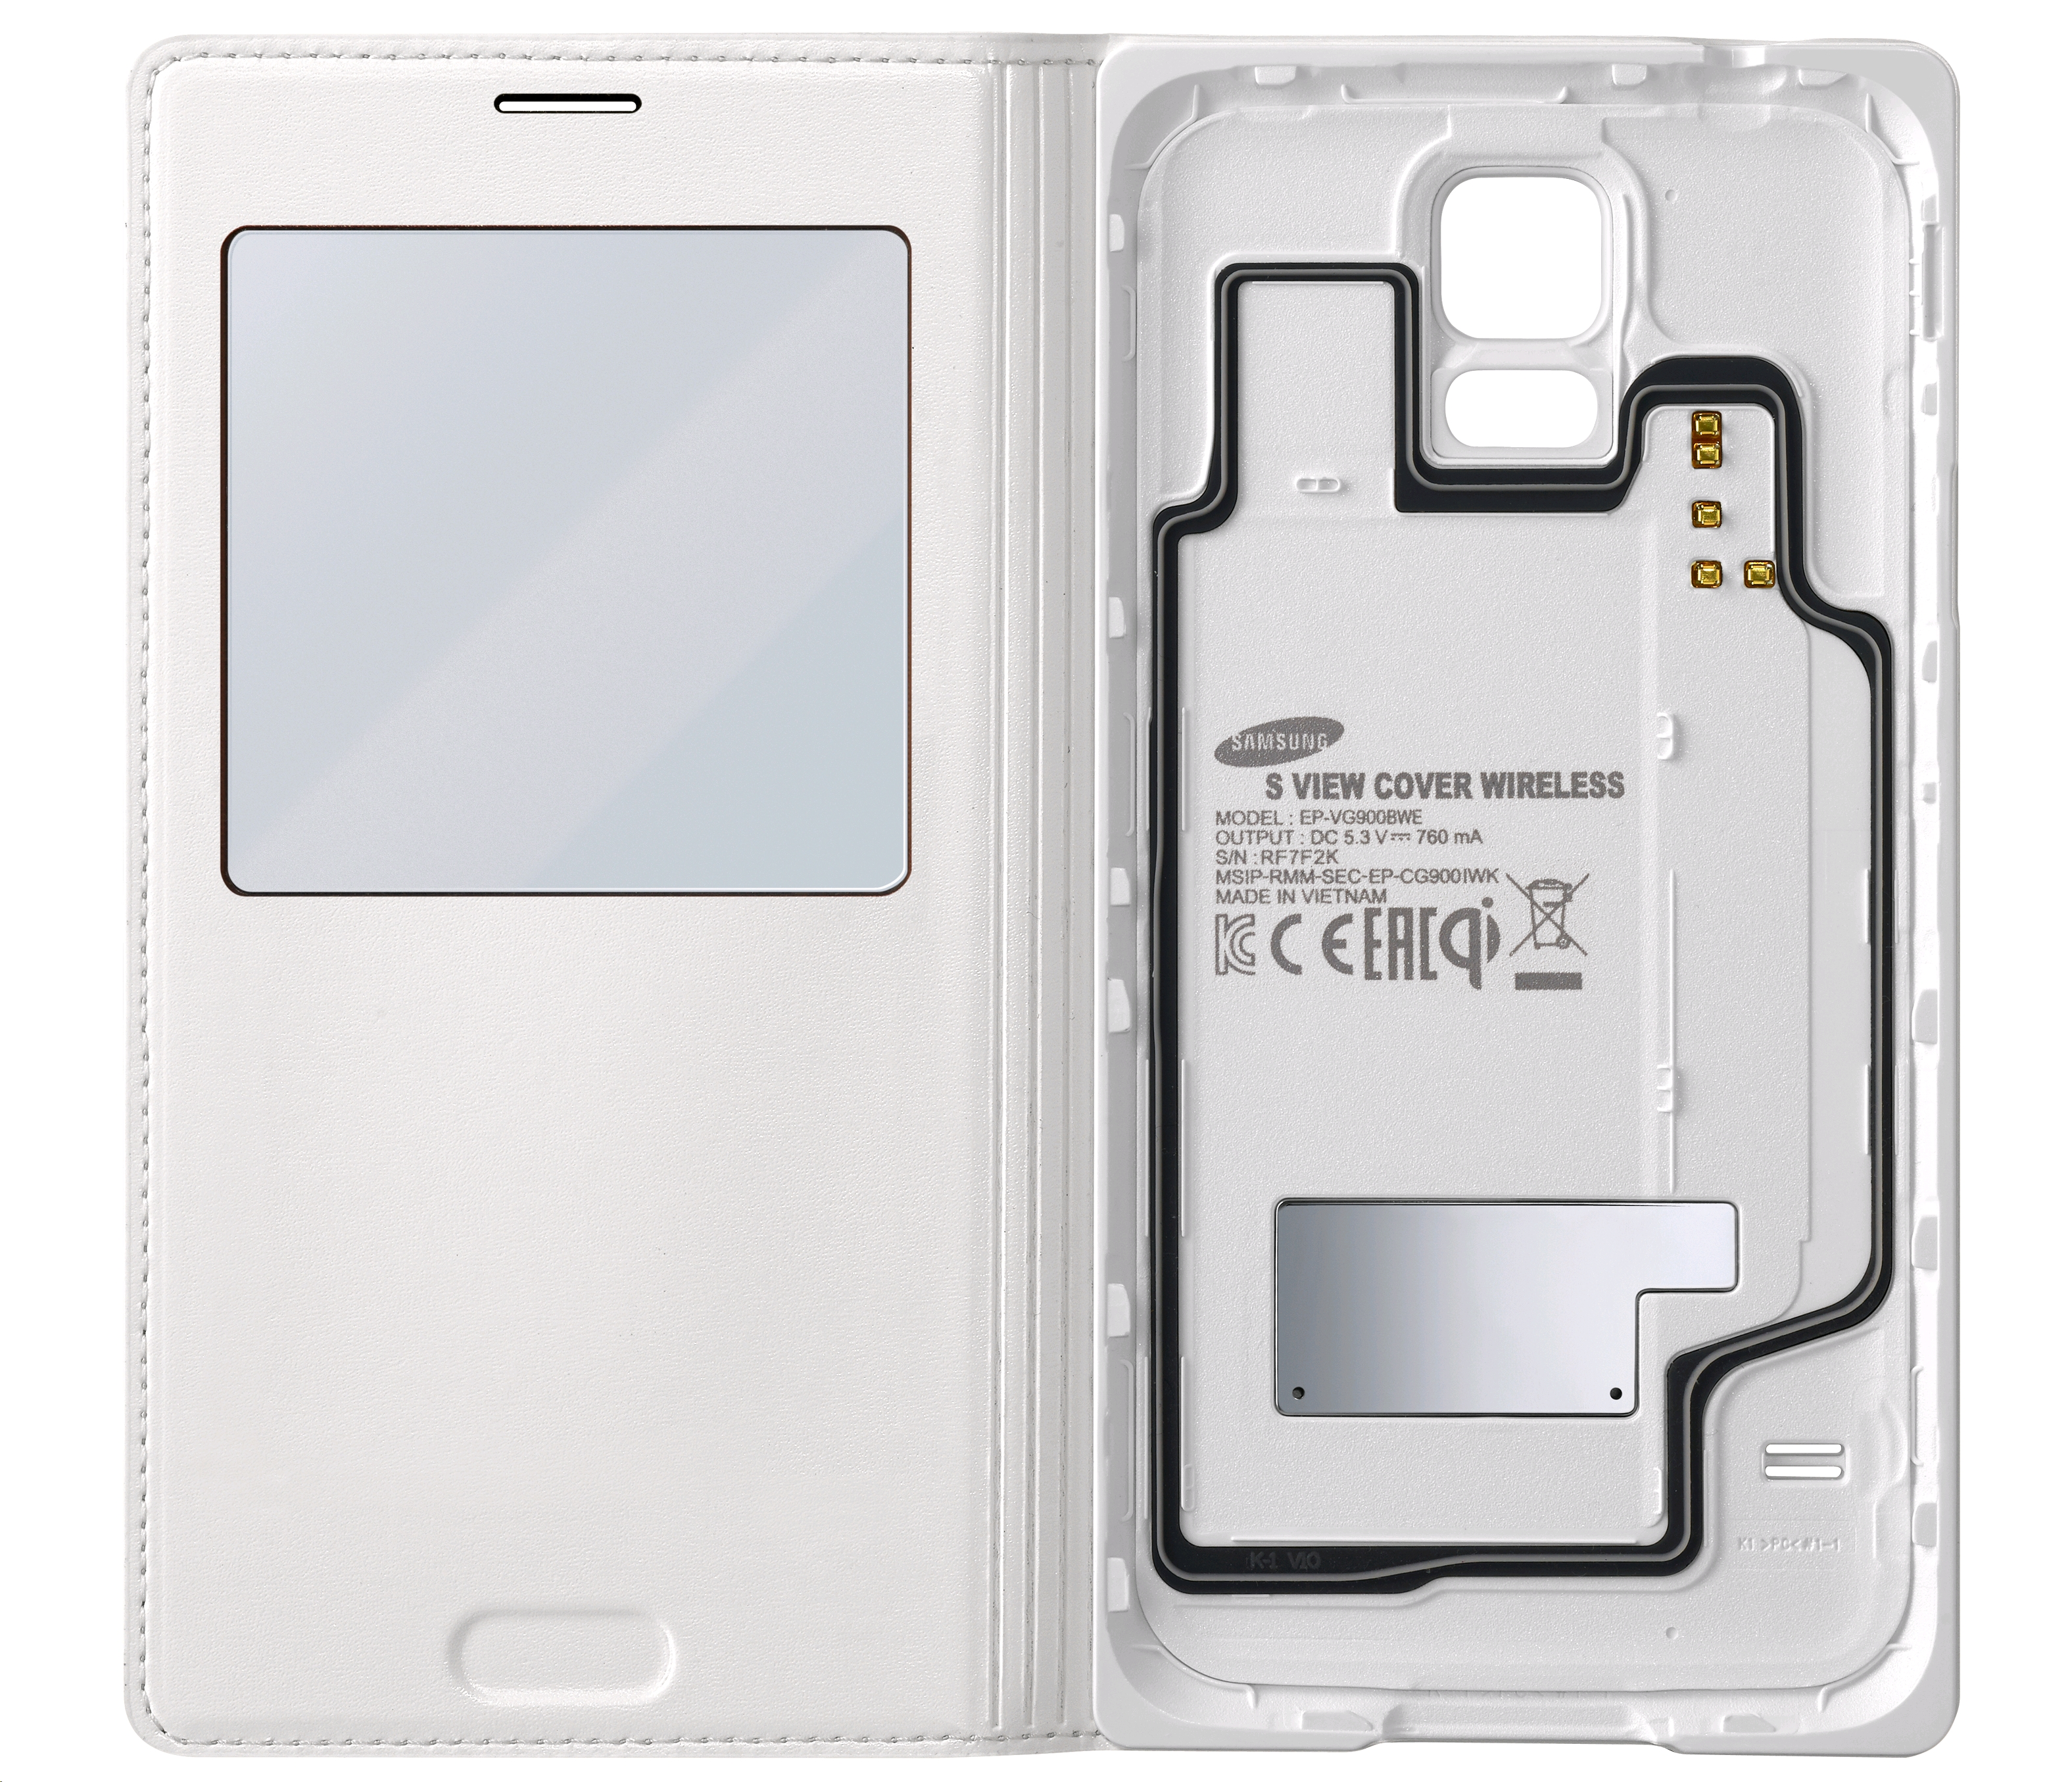 low priced 40cec 20678 Samsung S-View Wireless Charging Cover for Galaxy S5 White